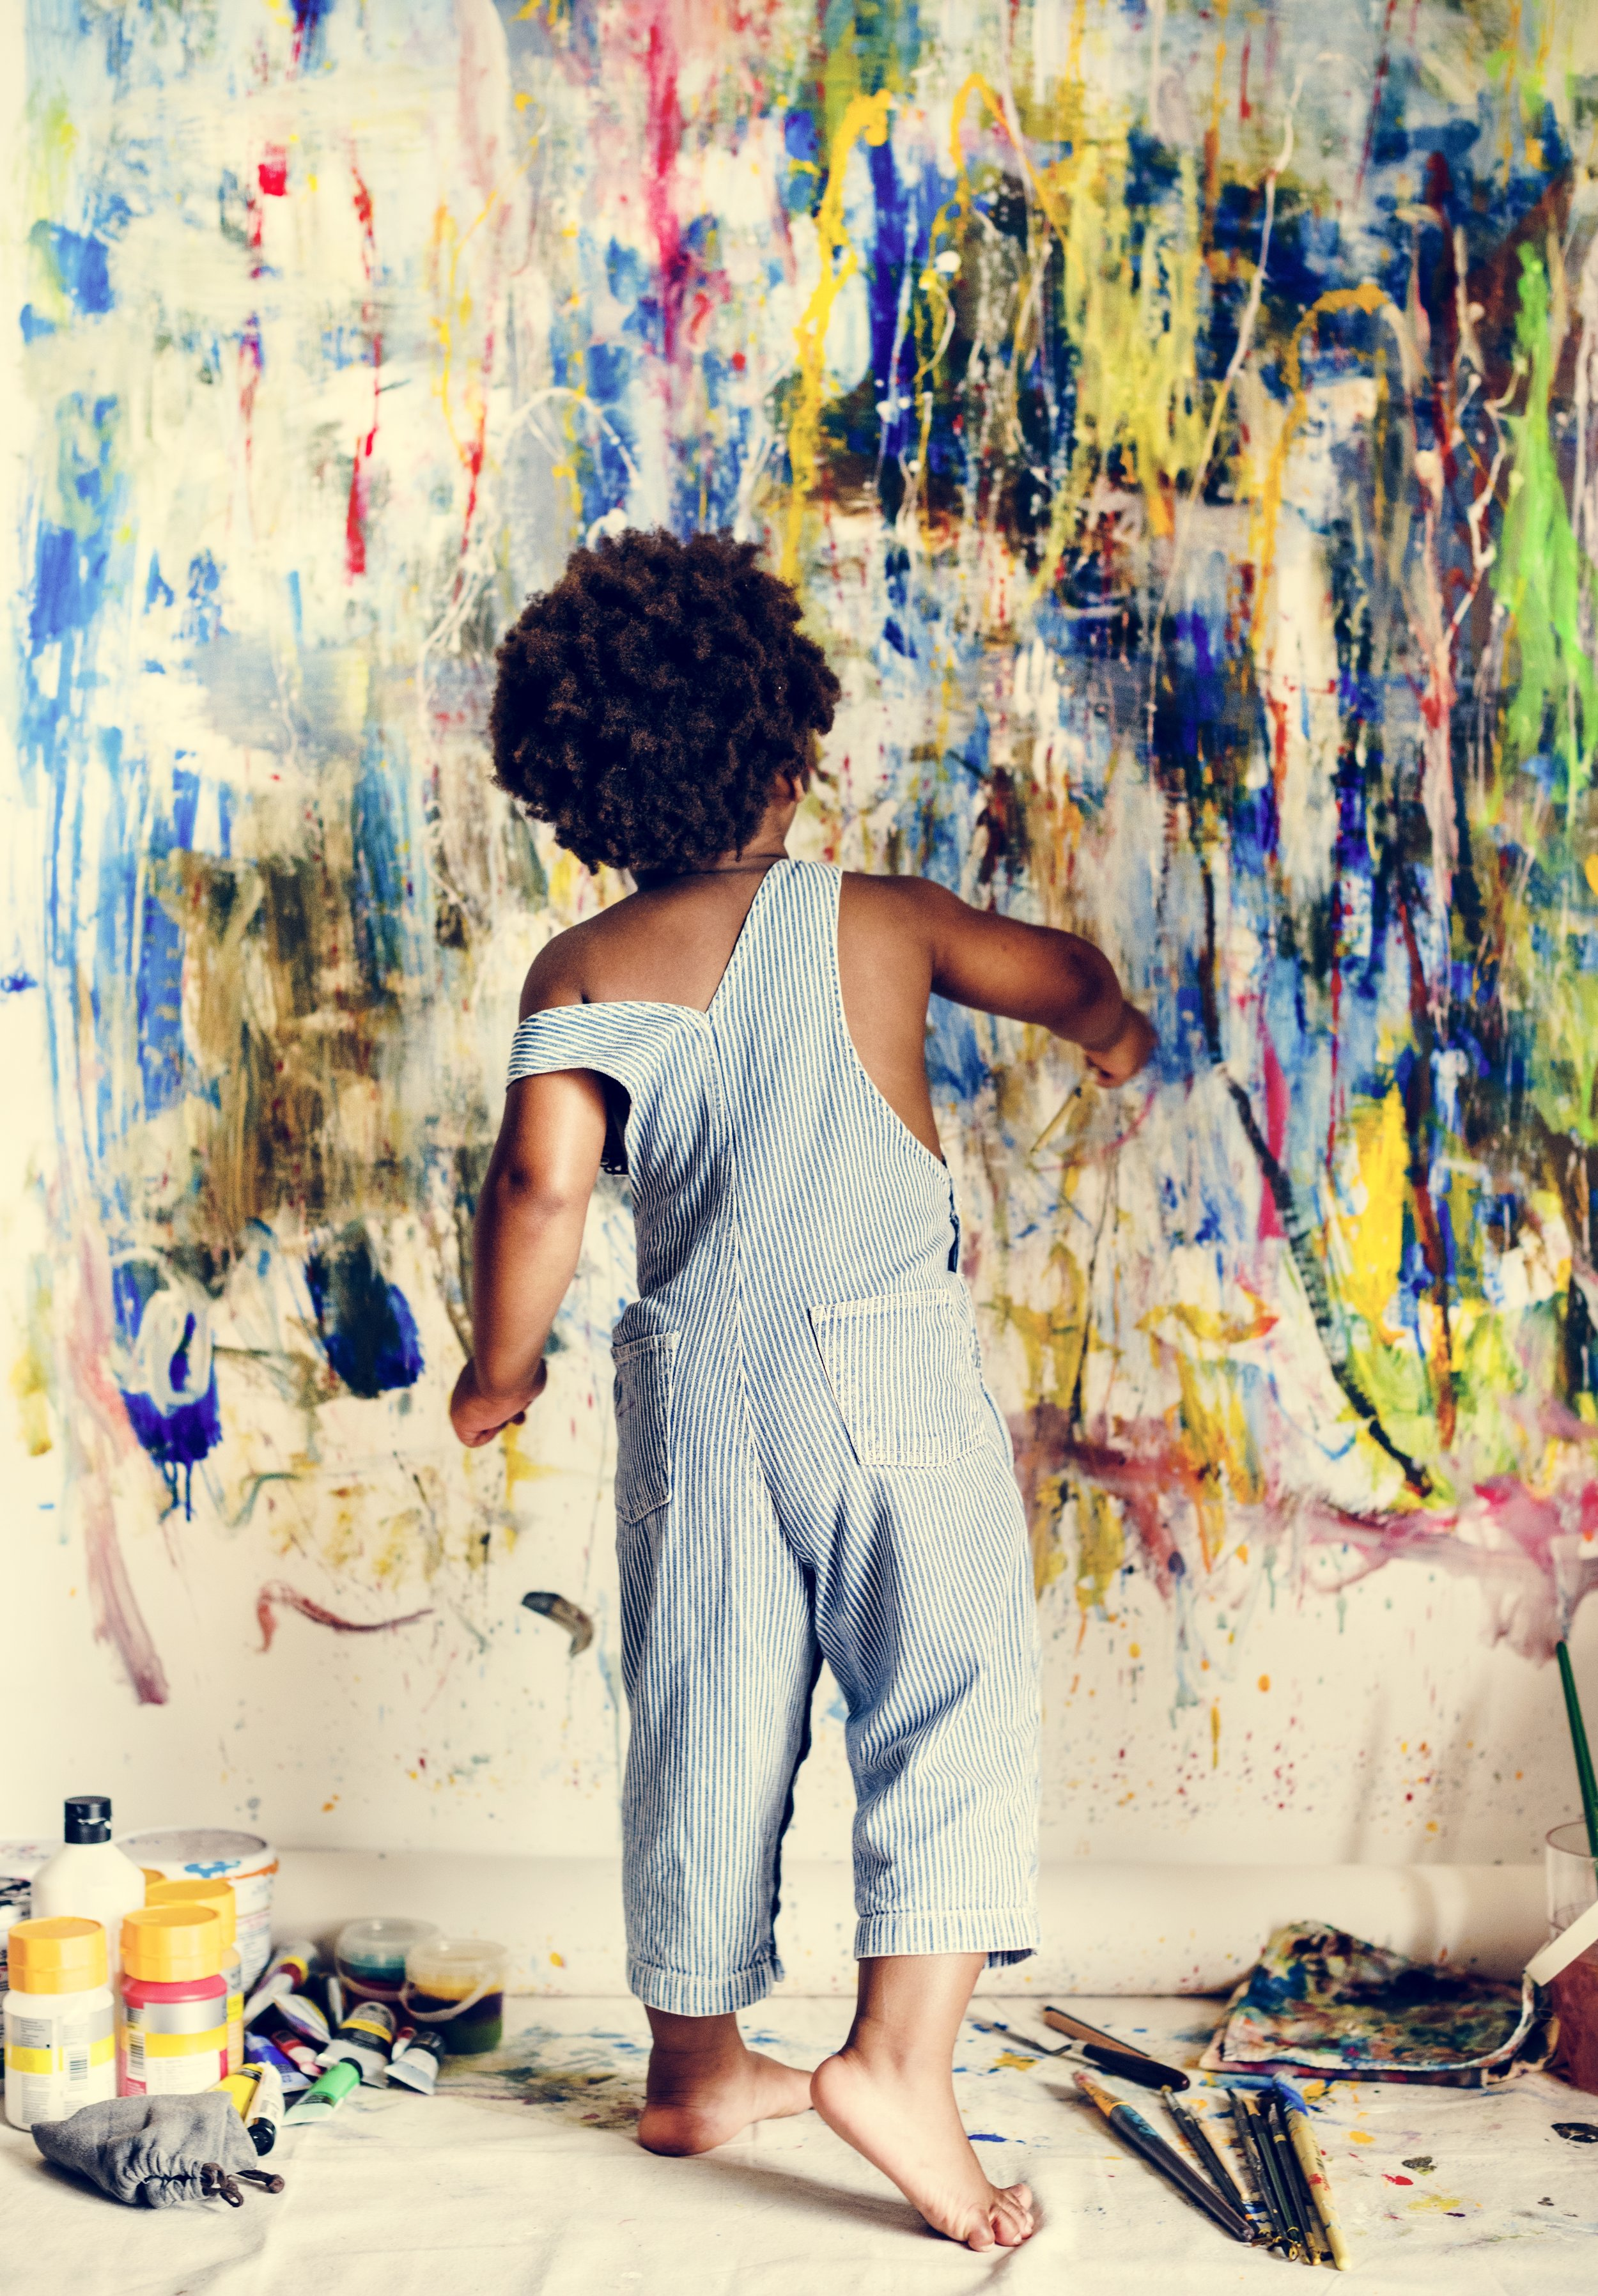 black-kid-enjoying-his-painting-PNBUDGV.jpg